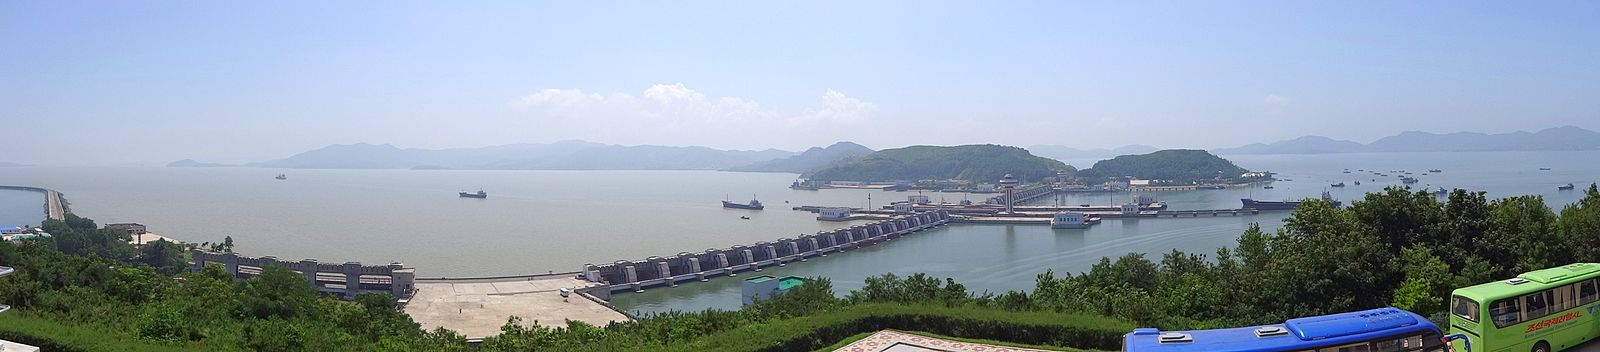 Panorama of Nampo Dam